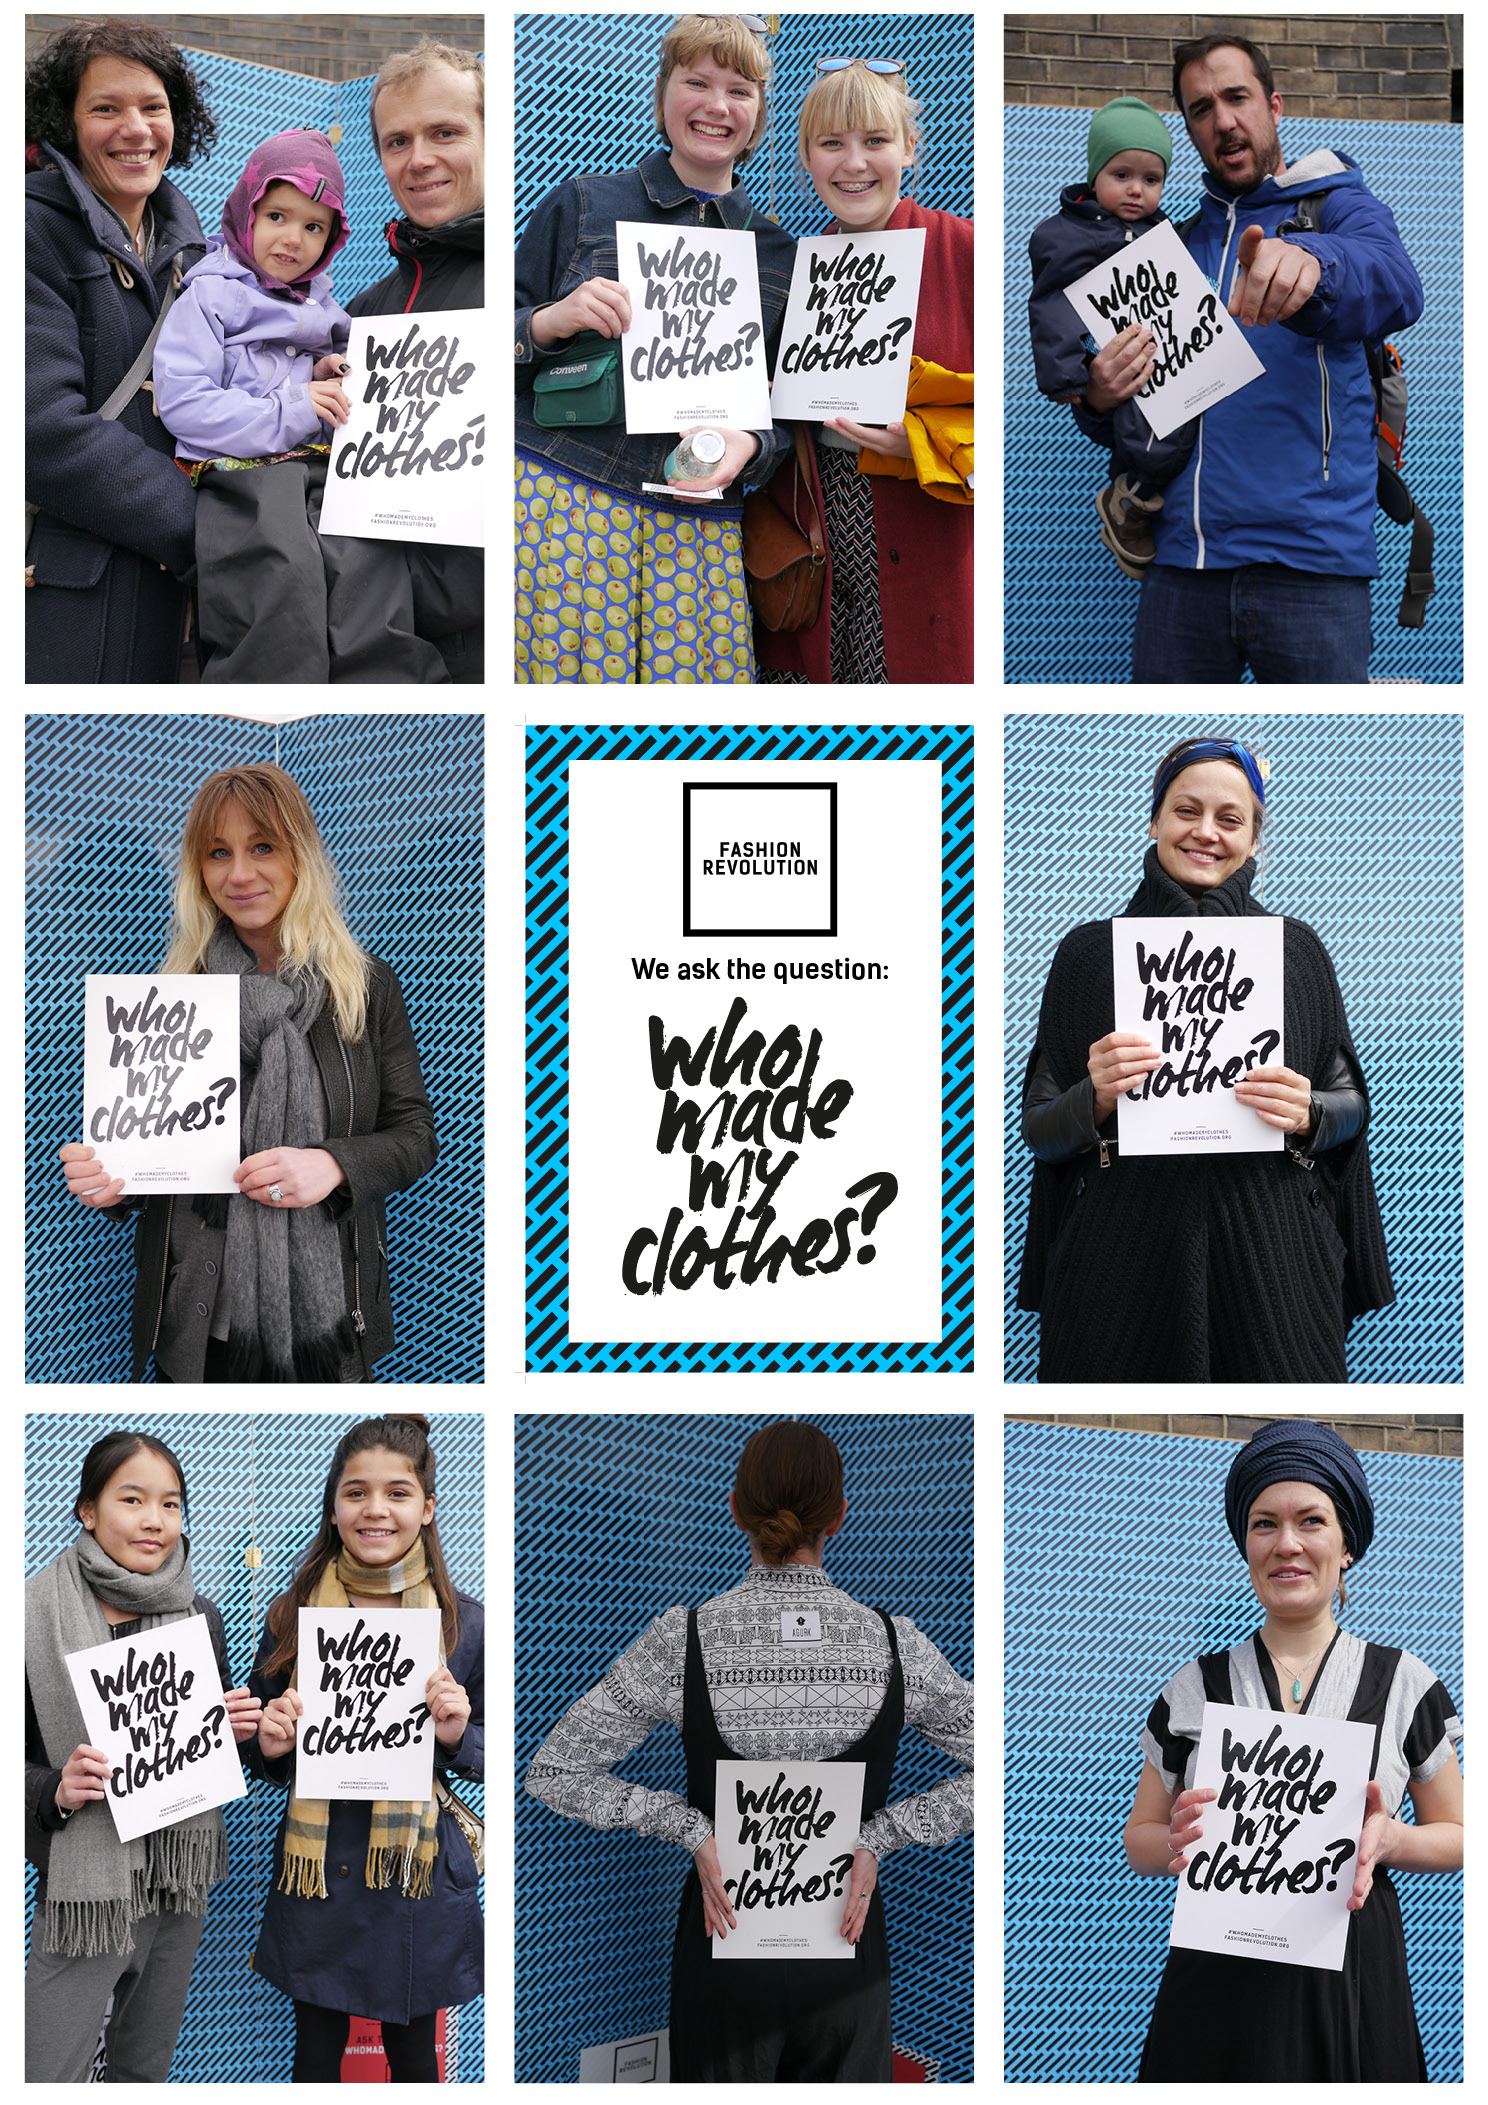 fash rev denmark collage2